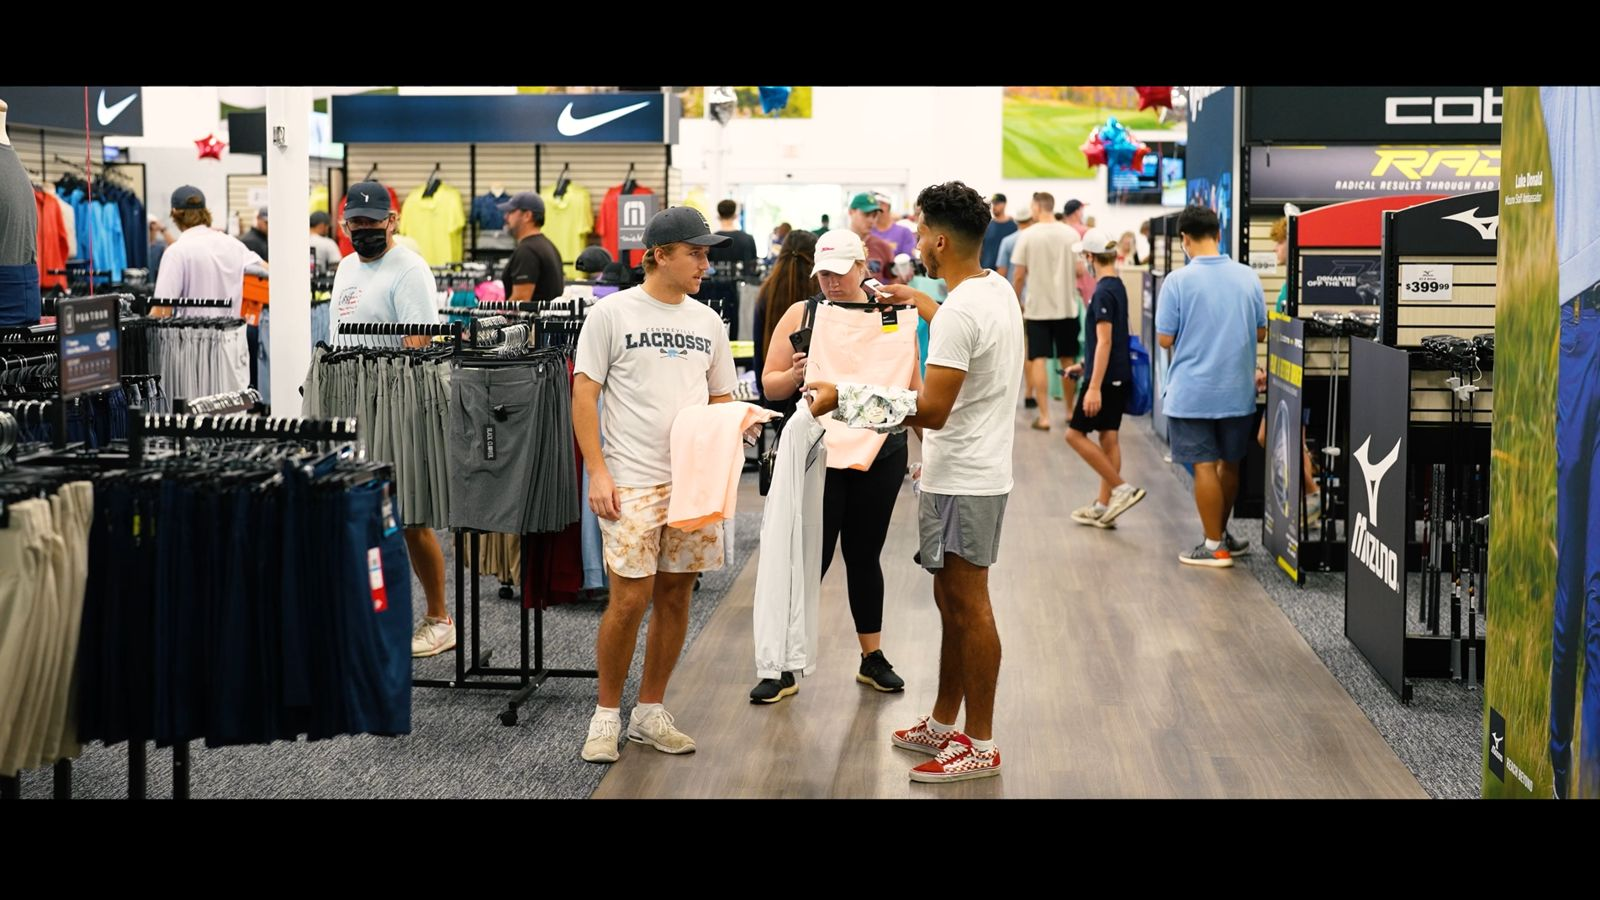 PGA Superstore shoppers